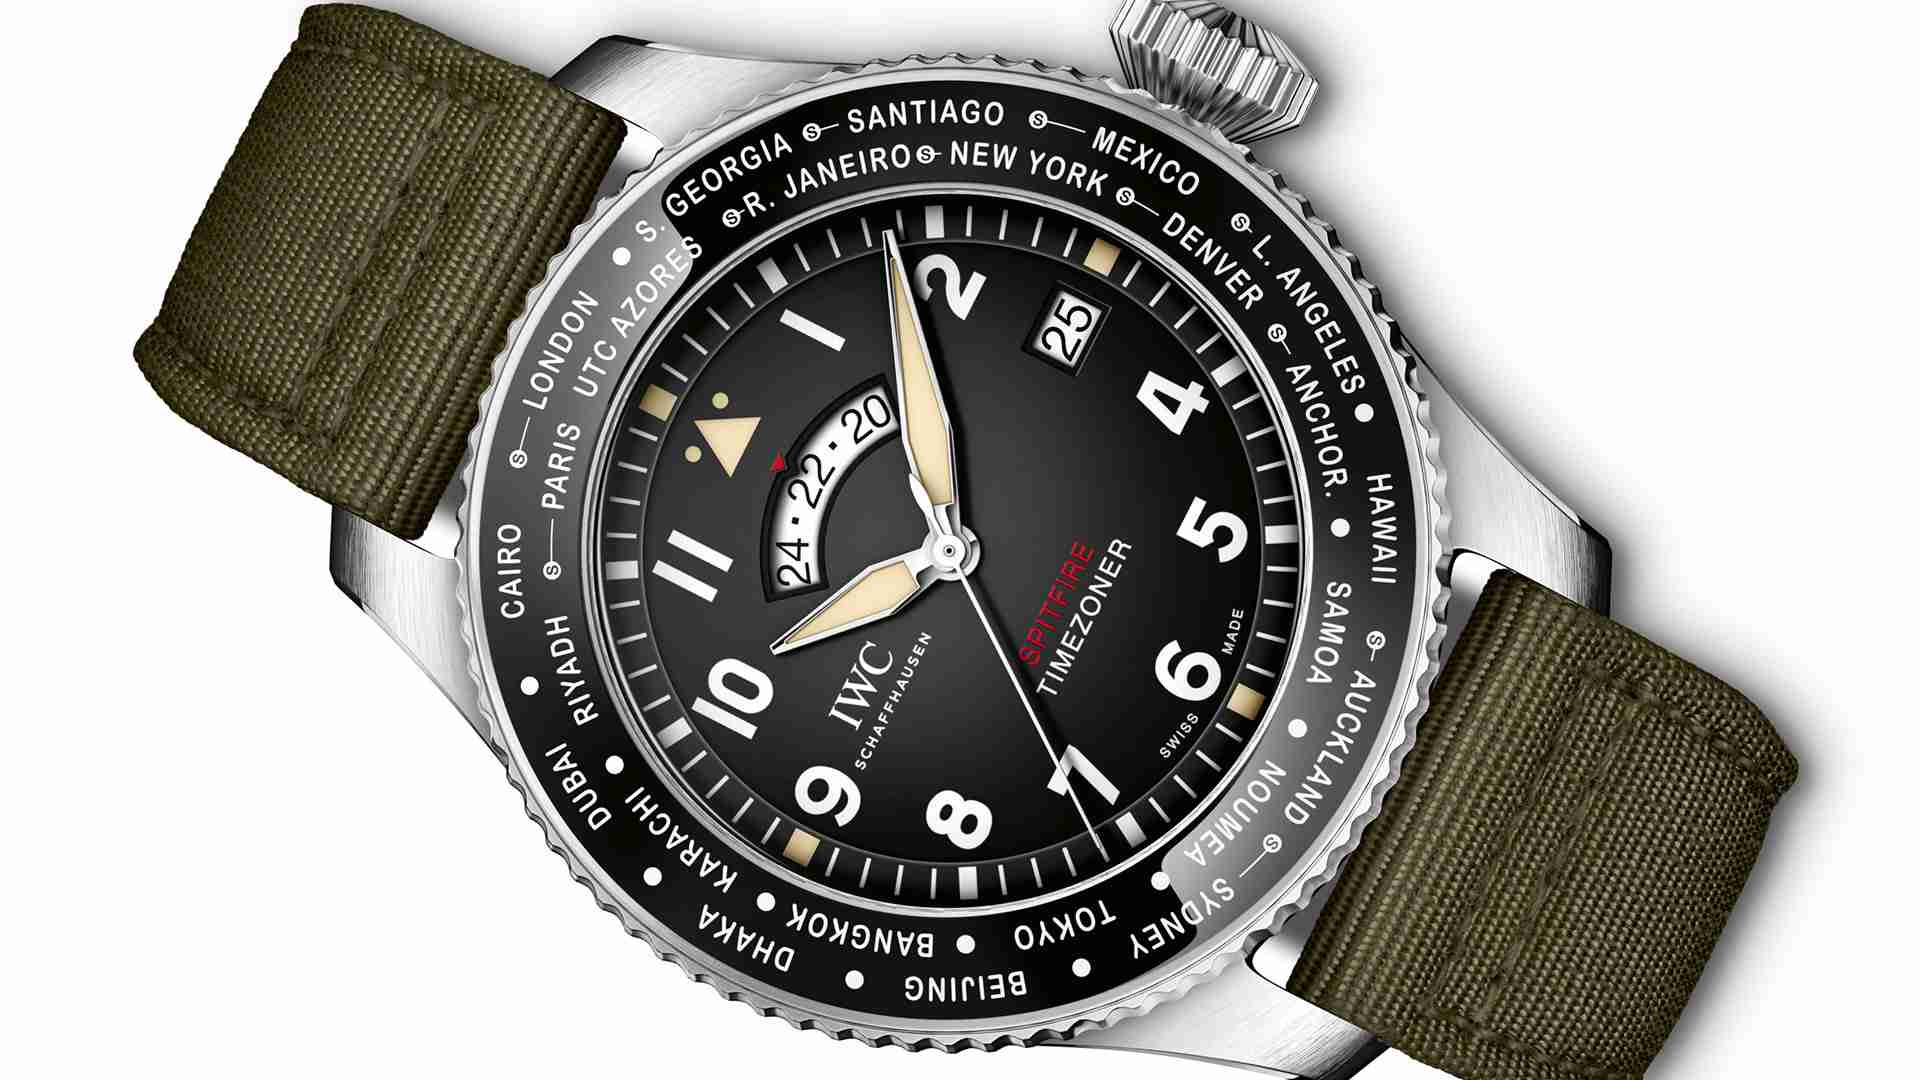 SIHH 2019 Best Swiss IWC Pilot's Watch Timezoner Spitfire Edition The Longest Flight Replica Watches